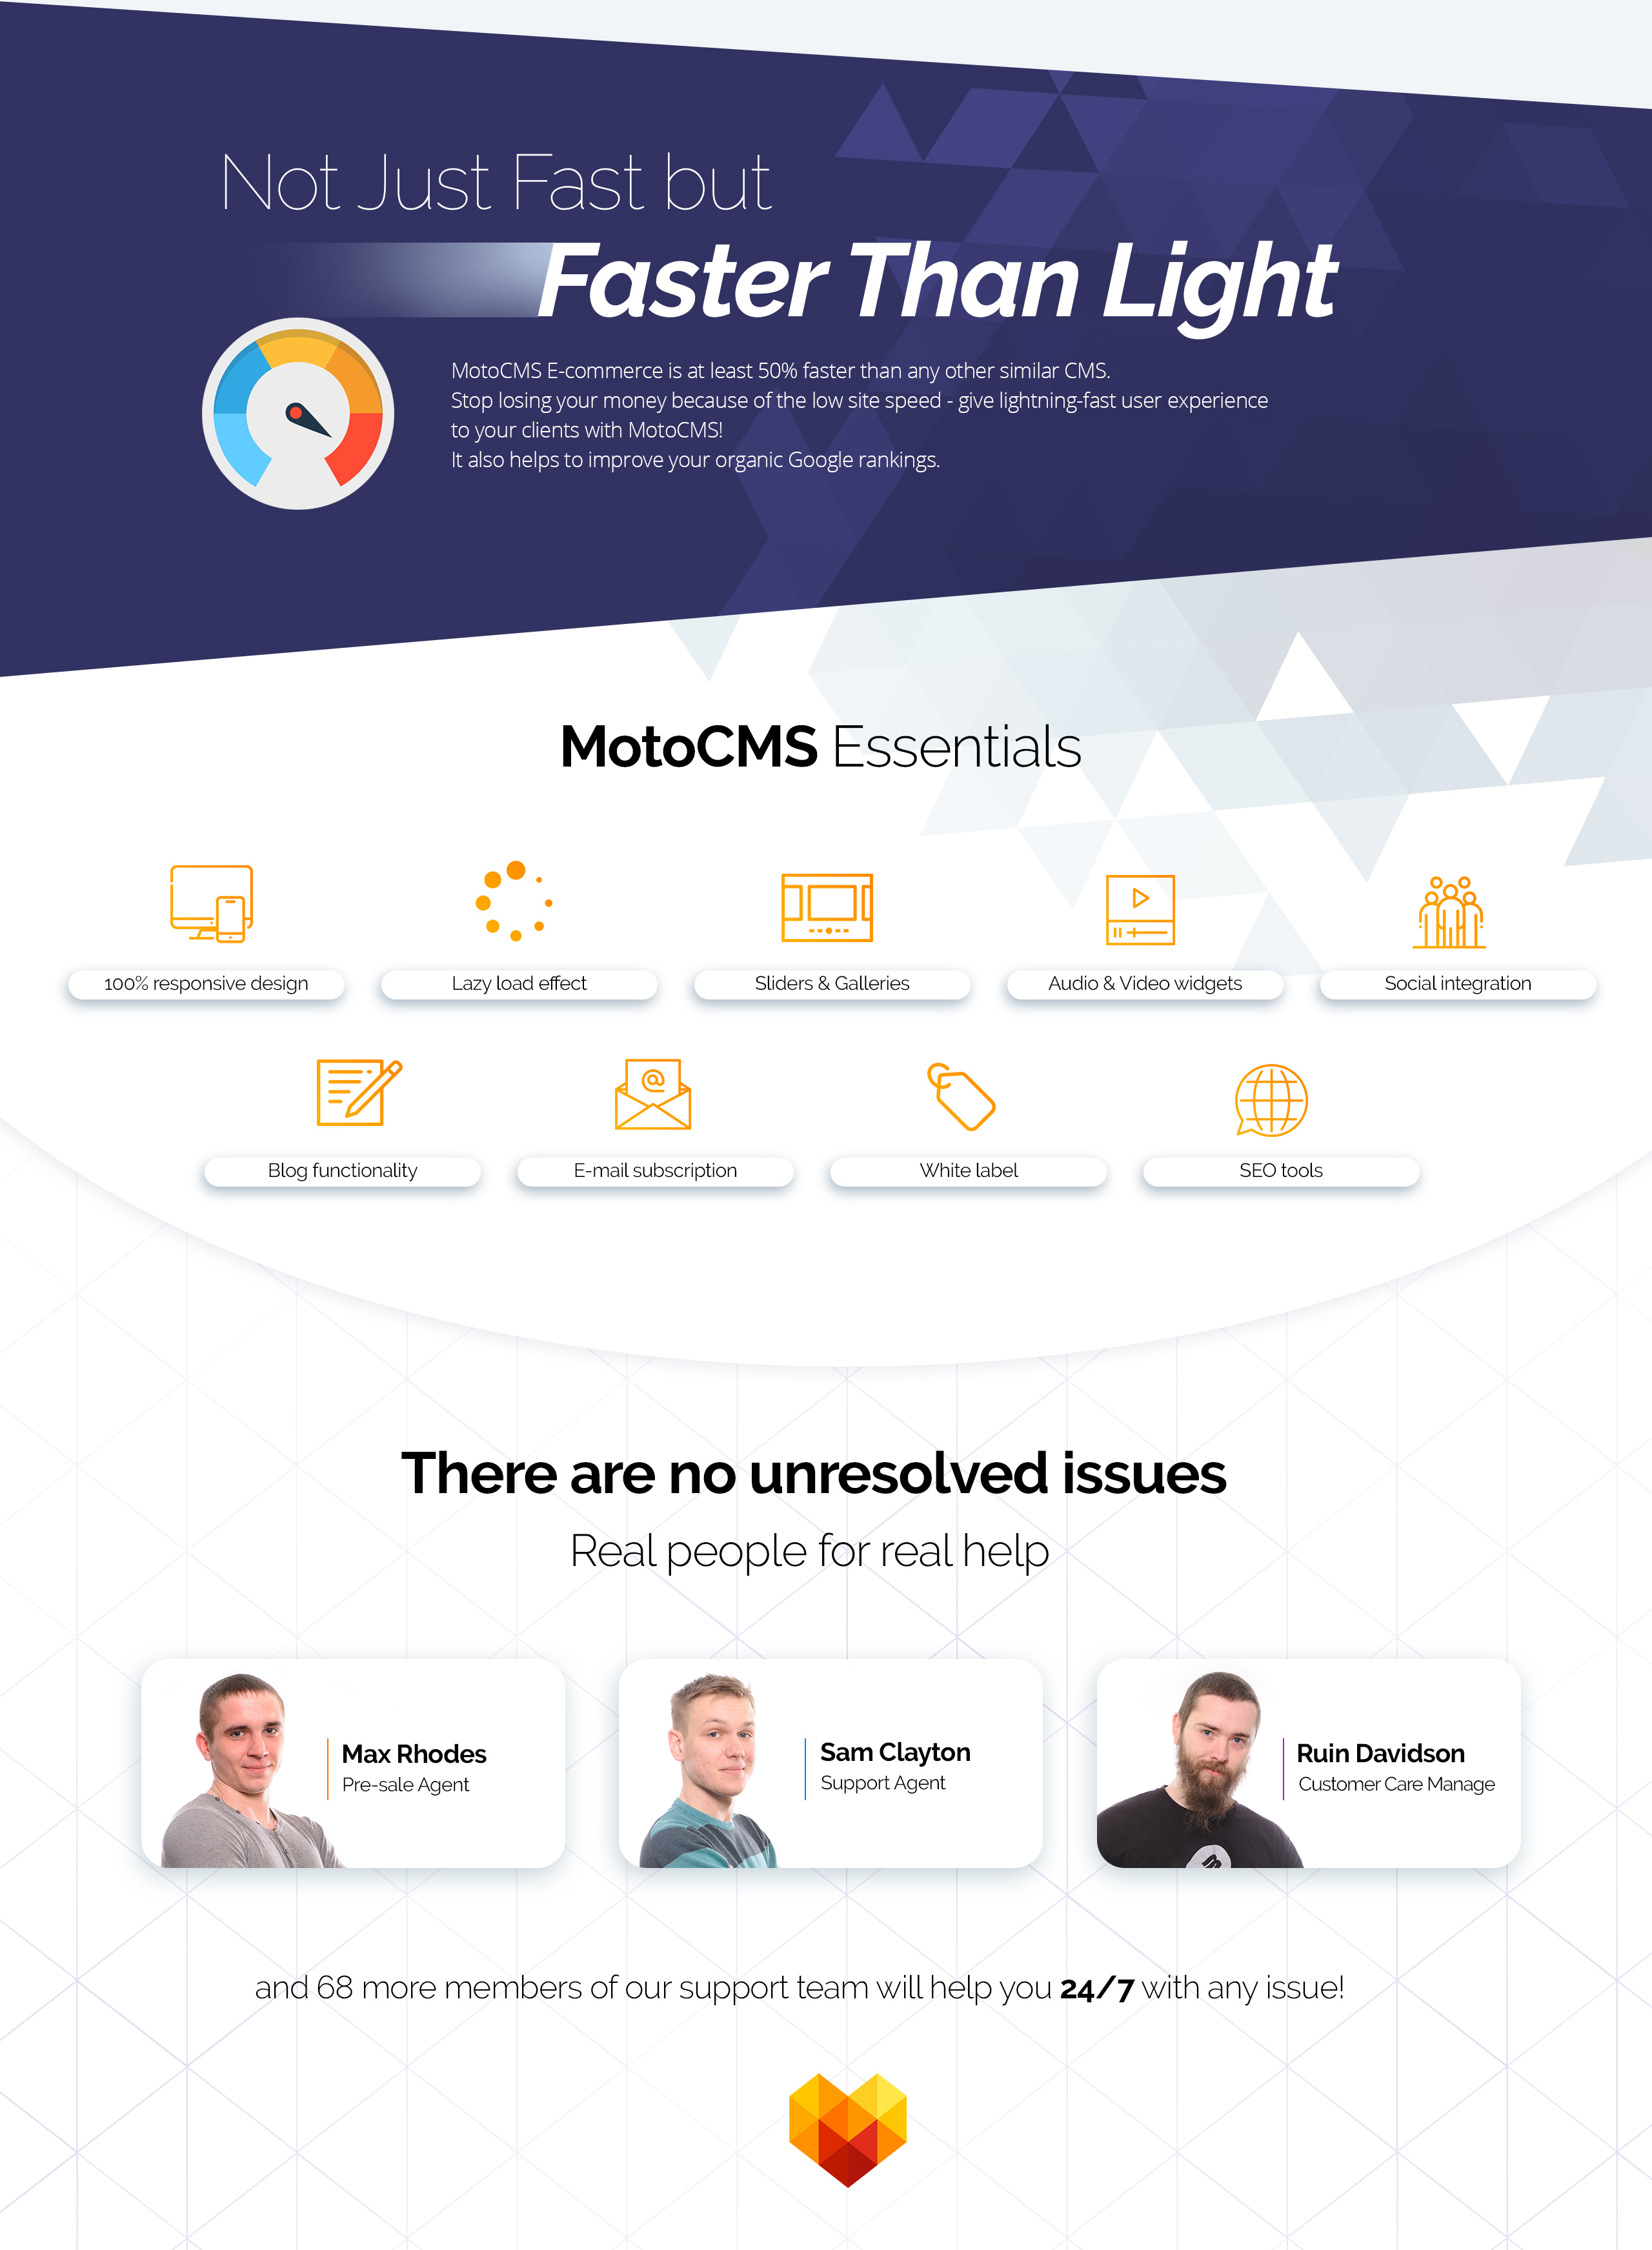 Dexitex - Grocery Store MotoCMS Ecommerce Template